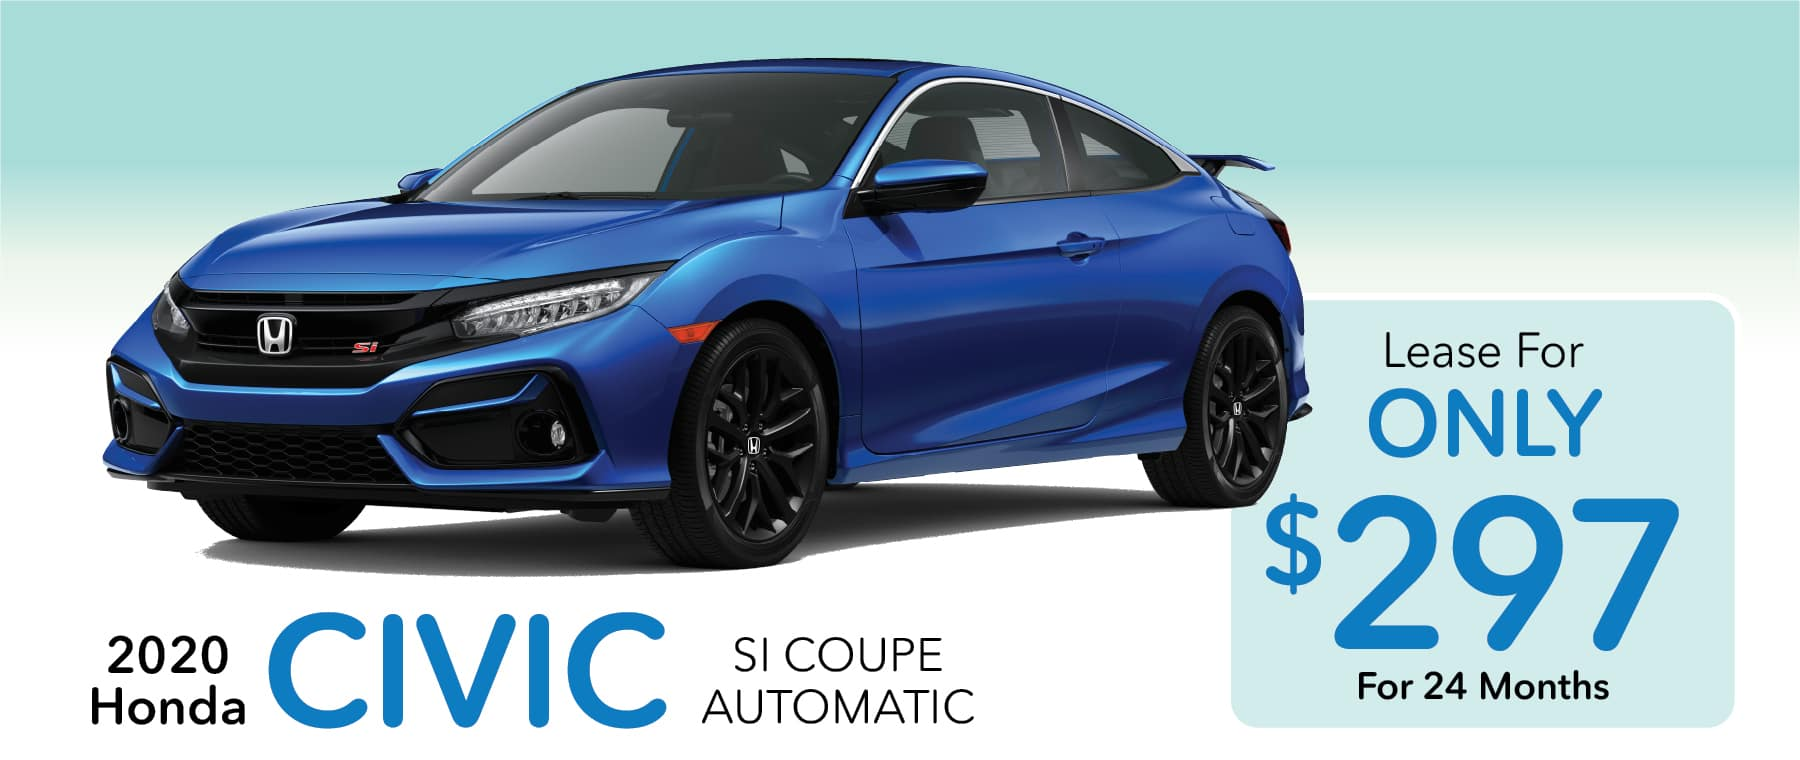 2020 Honda Civic Coupe Lease for $297 Per Month